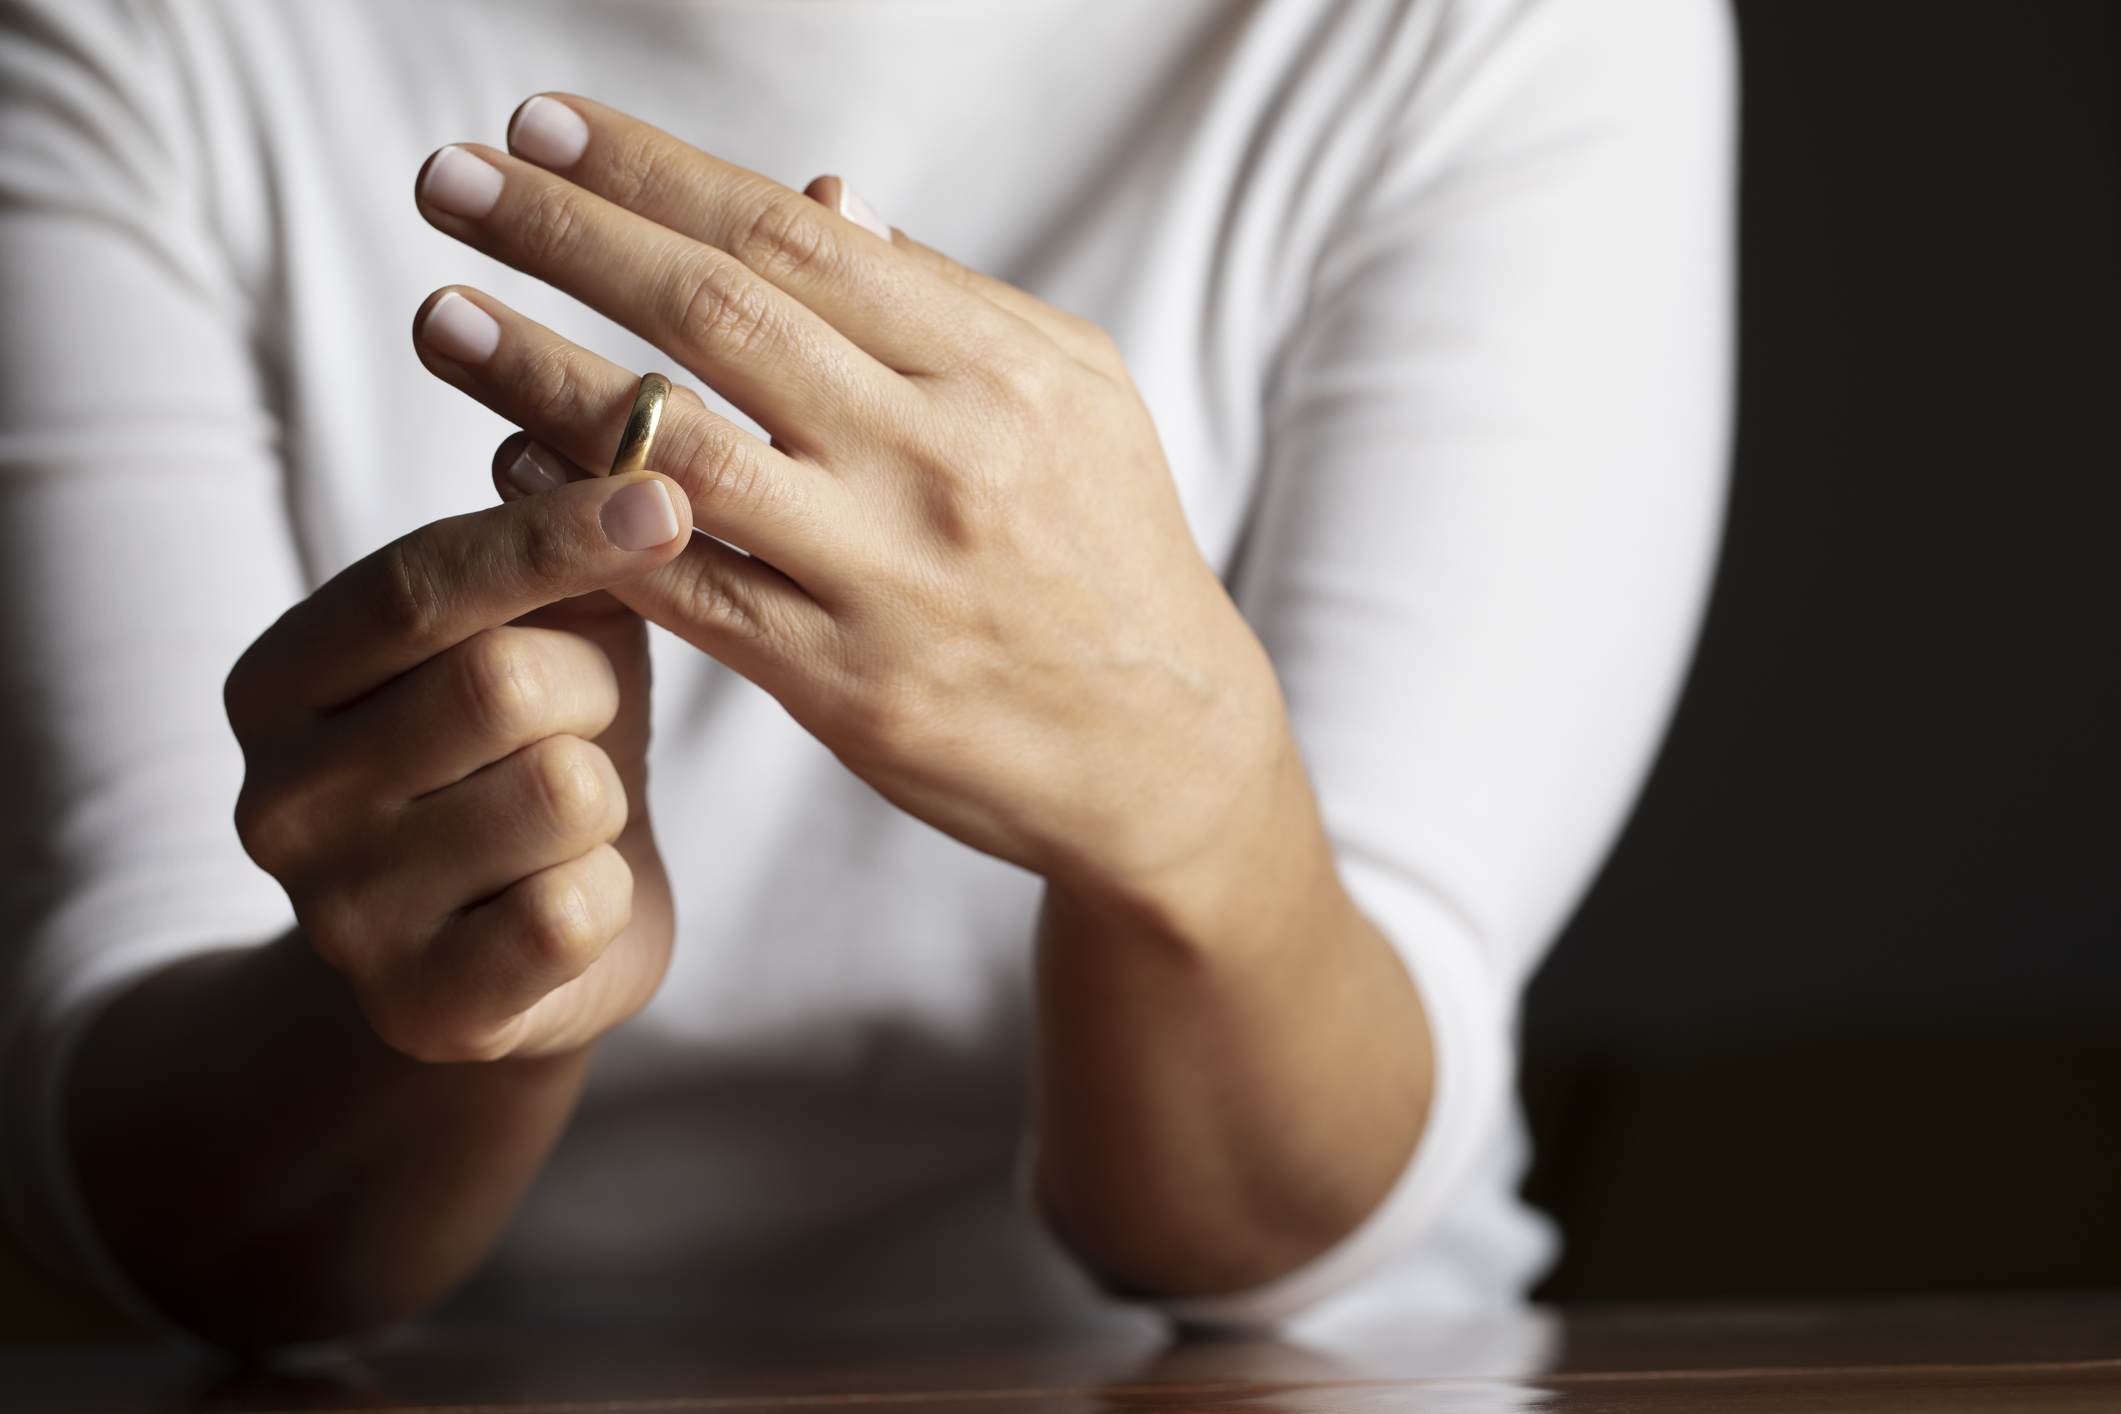 Woman removing her wedding ring after divorce